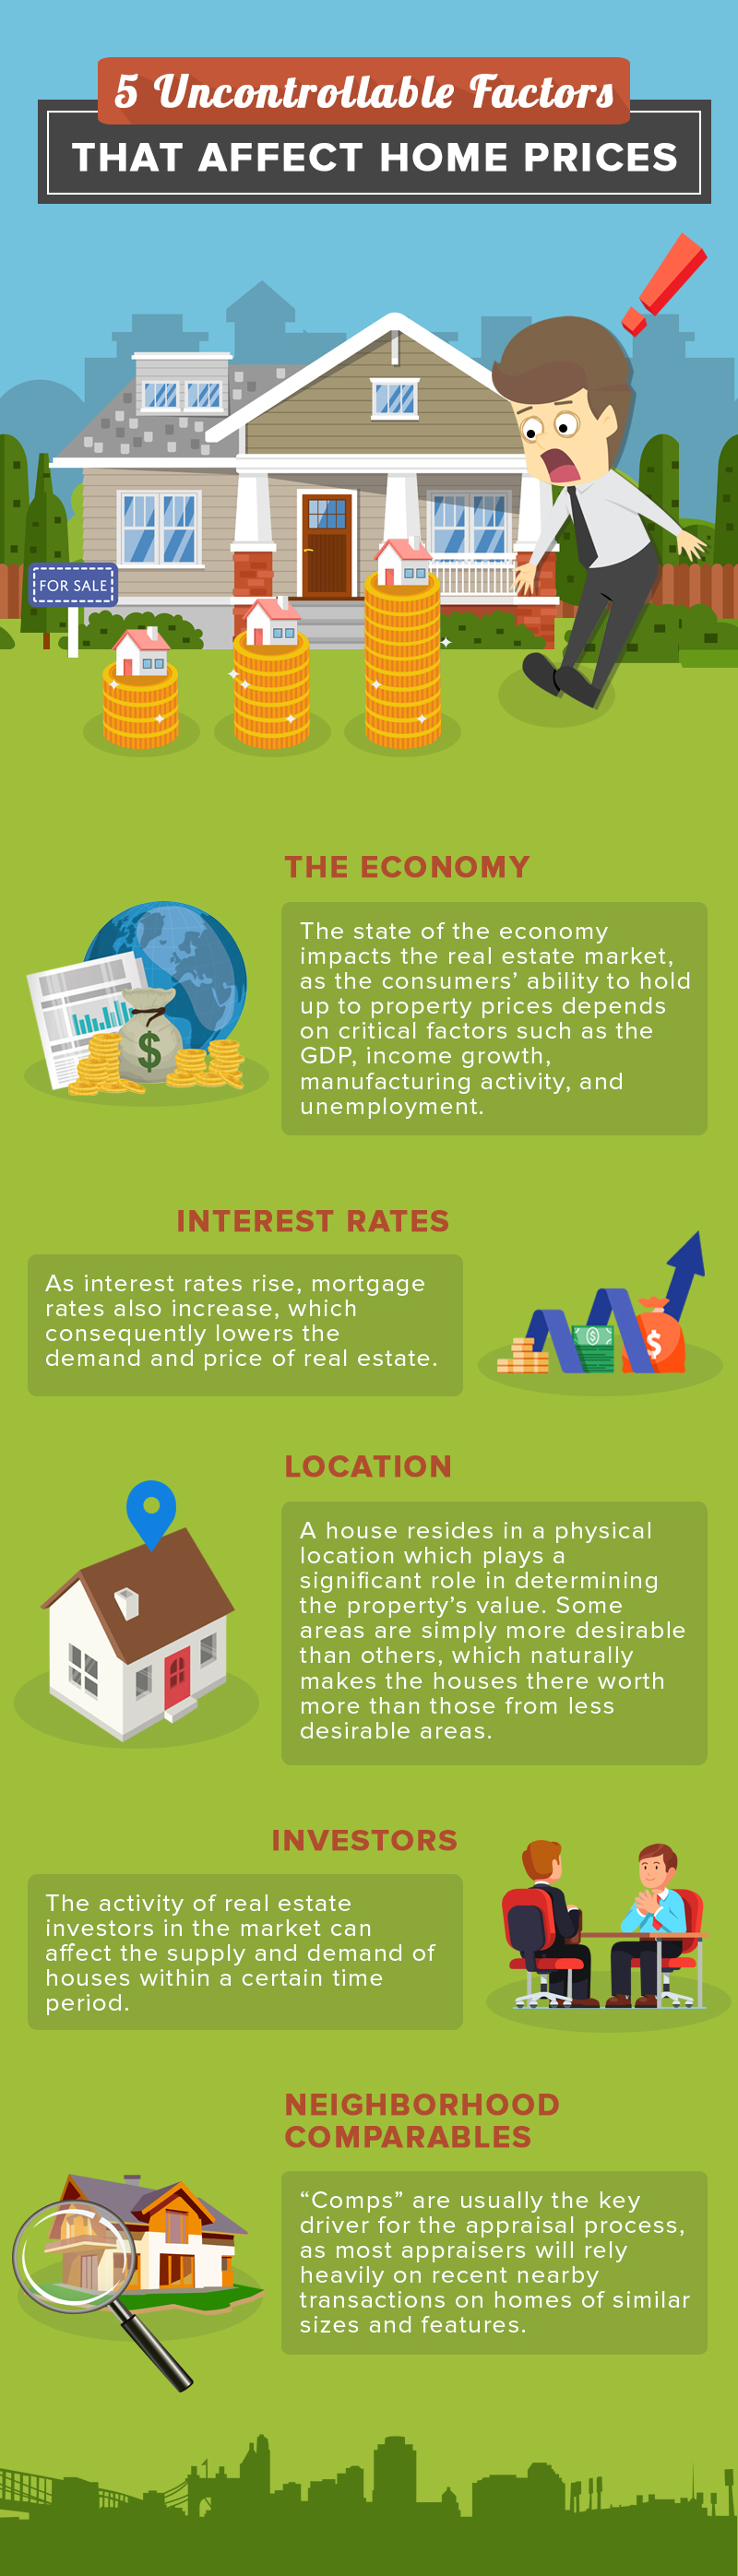 5 Uncontrollable Factors That Affect Home Prices